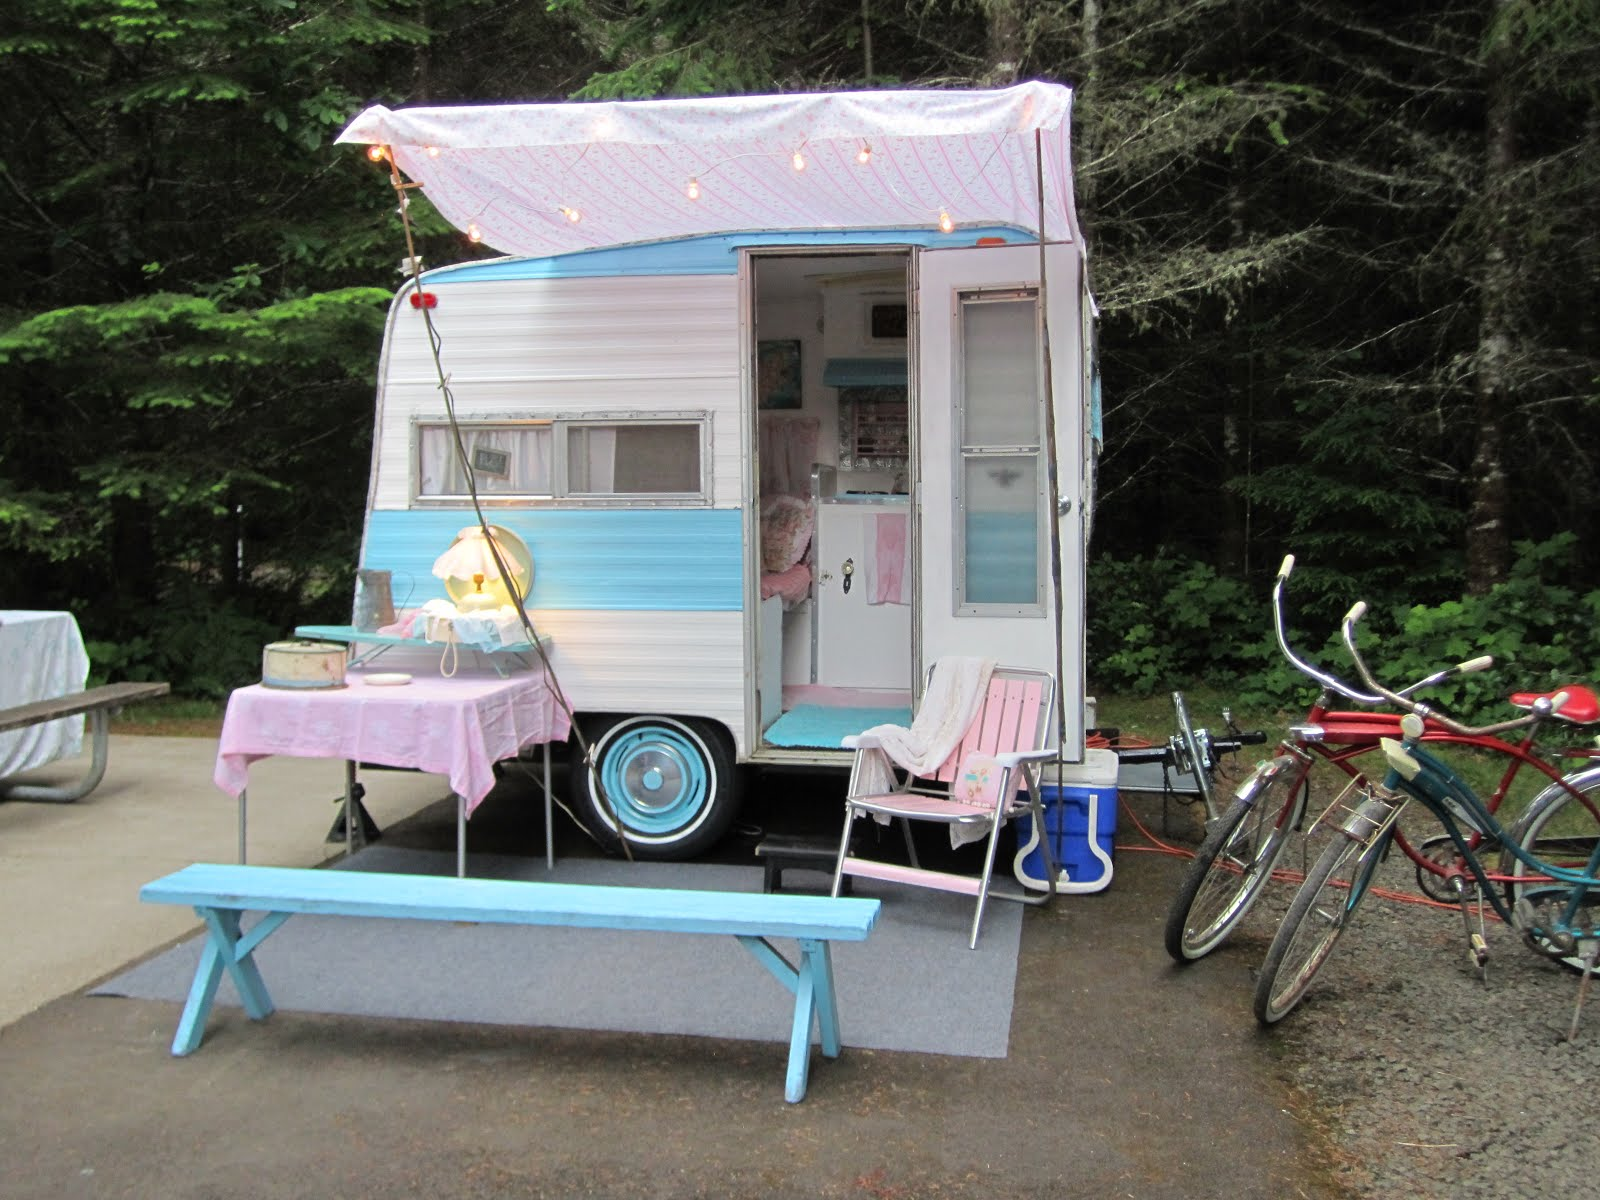 Popular Posts ~Vintage Trailer Rally Gathering